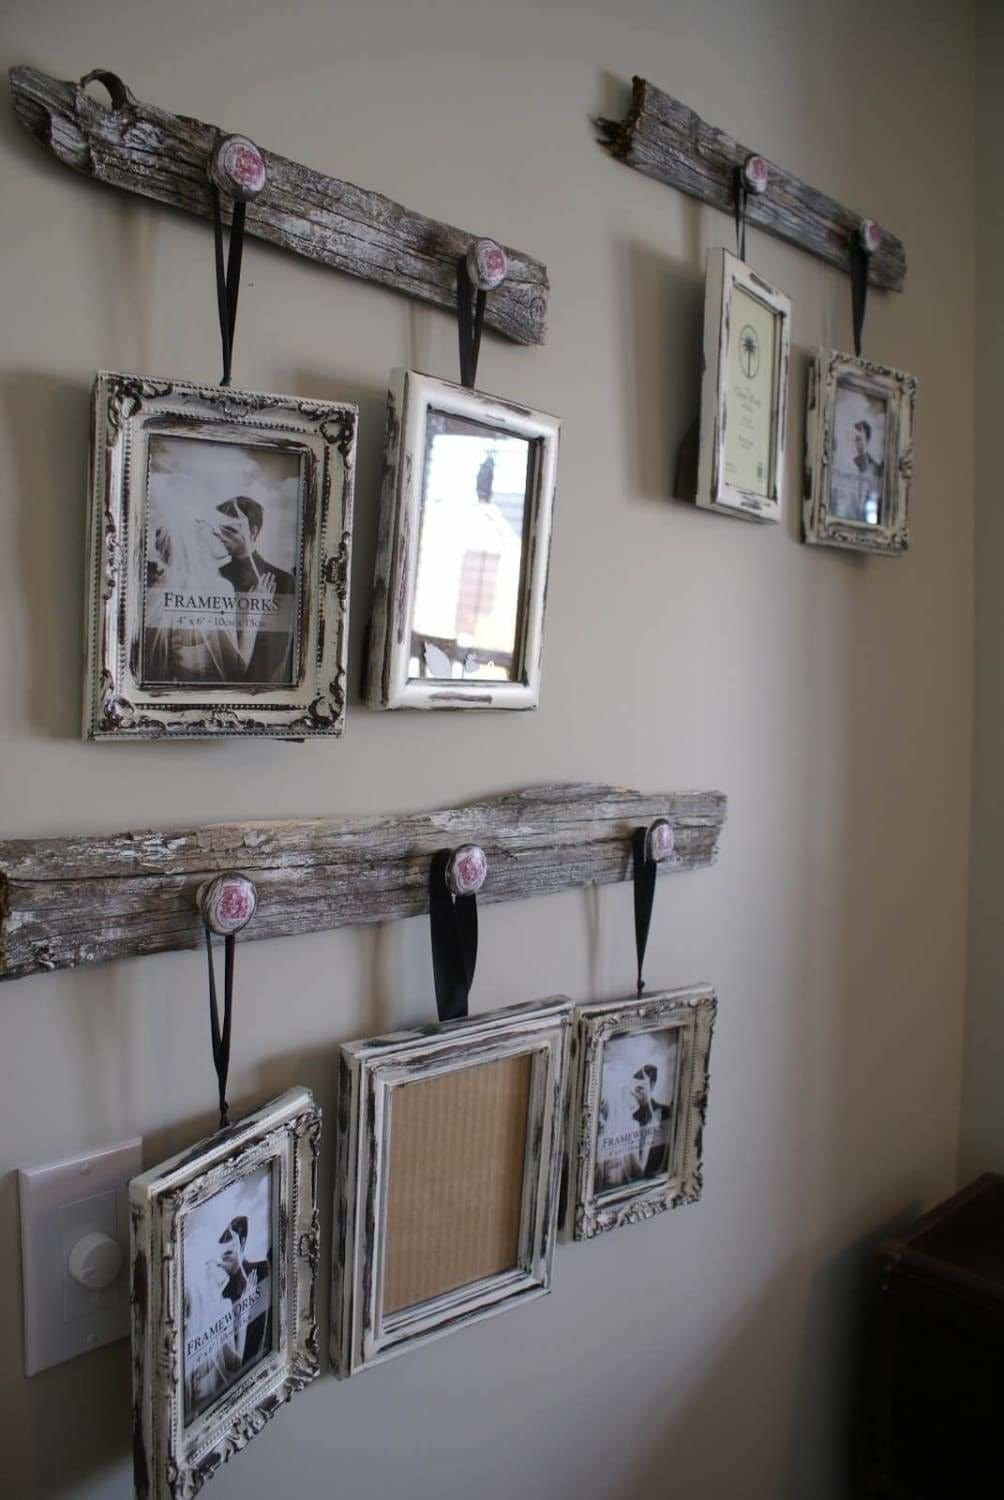 If you're looking for a very rustic look then why not create your own reclaimed wood plank hangers. Find a couple of ornate drawer pulls to accent the planks. Here is another wonderful place for a couple of our rustic barnwood picture frames, all you need is a little decorative ribbon and a couple family photos to complete this classic rustic look. Consider using black and white or sepia tone finish photos.